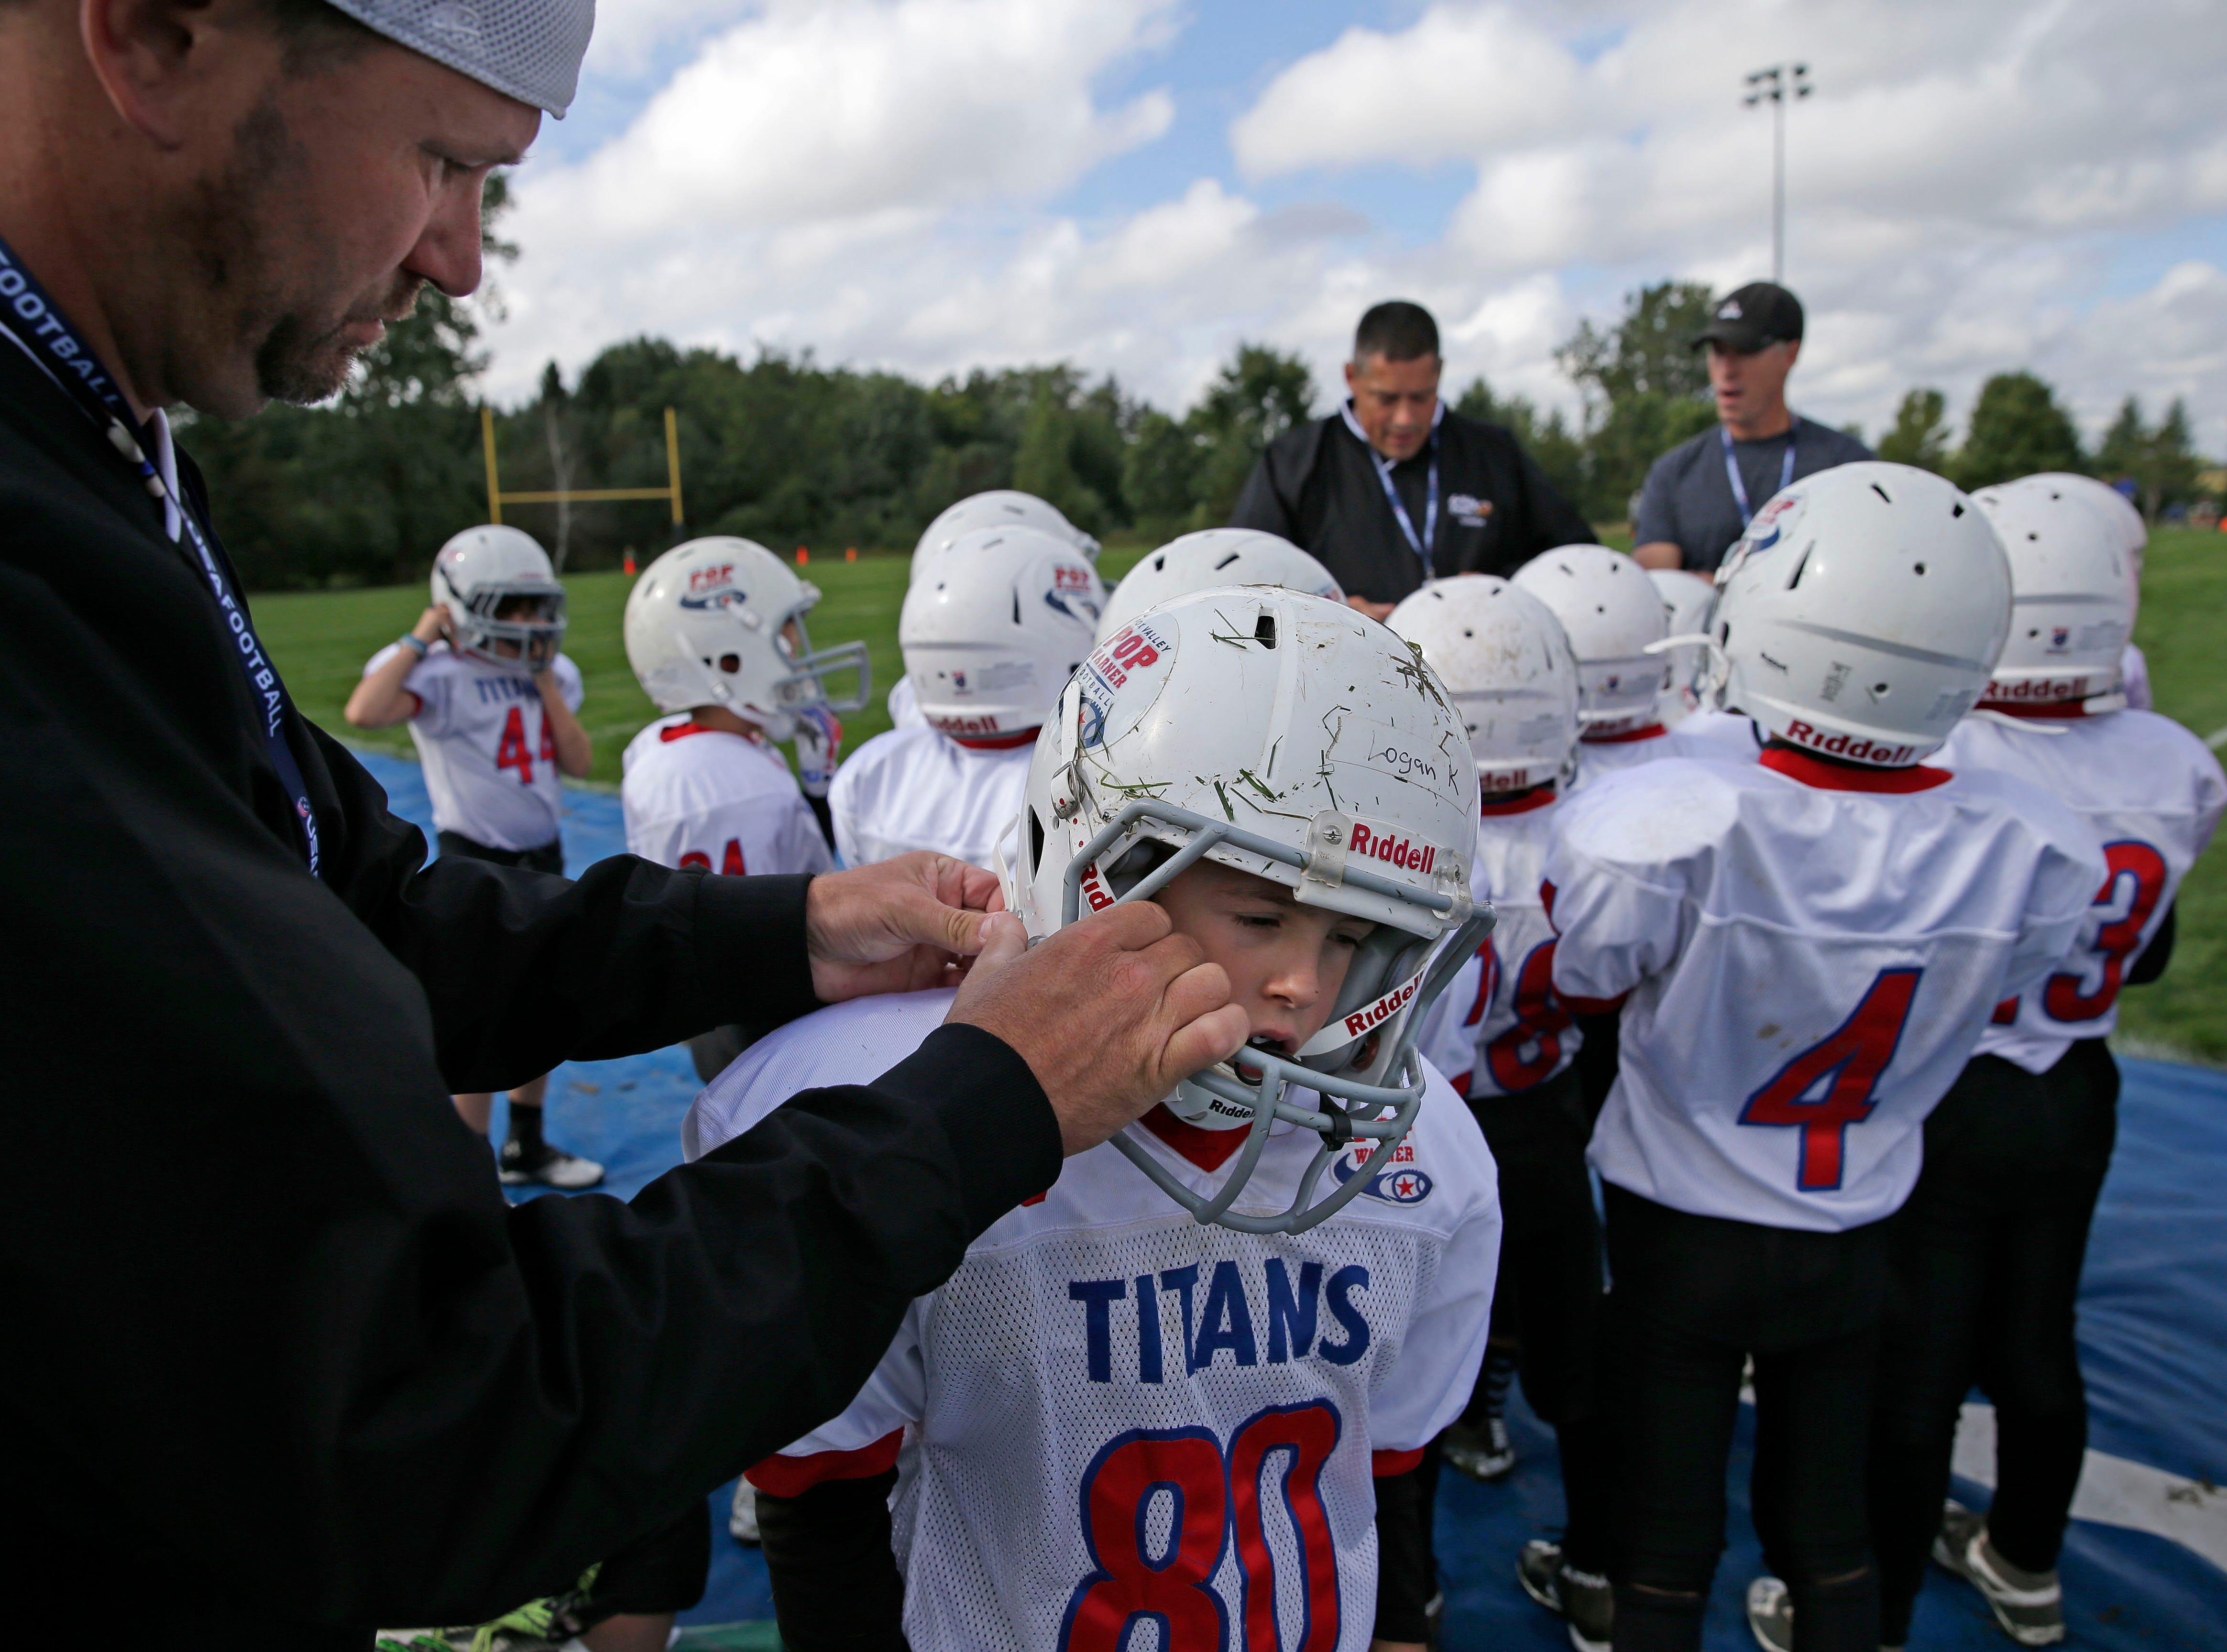 Logan Kittoe of the Titans gets help with his helmet as Fox Valley Pop Warner Football opens the season Saturday, September 8, 2018, at Plamann Park in Grand Chute, Wis.